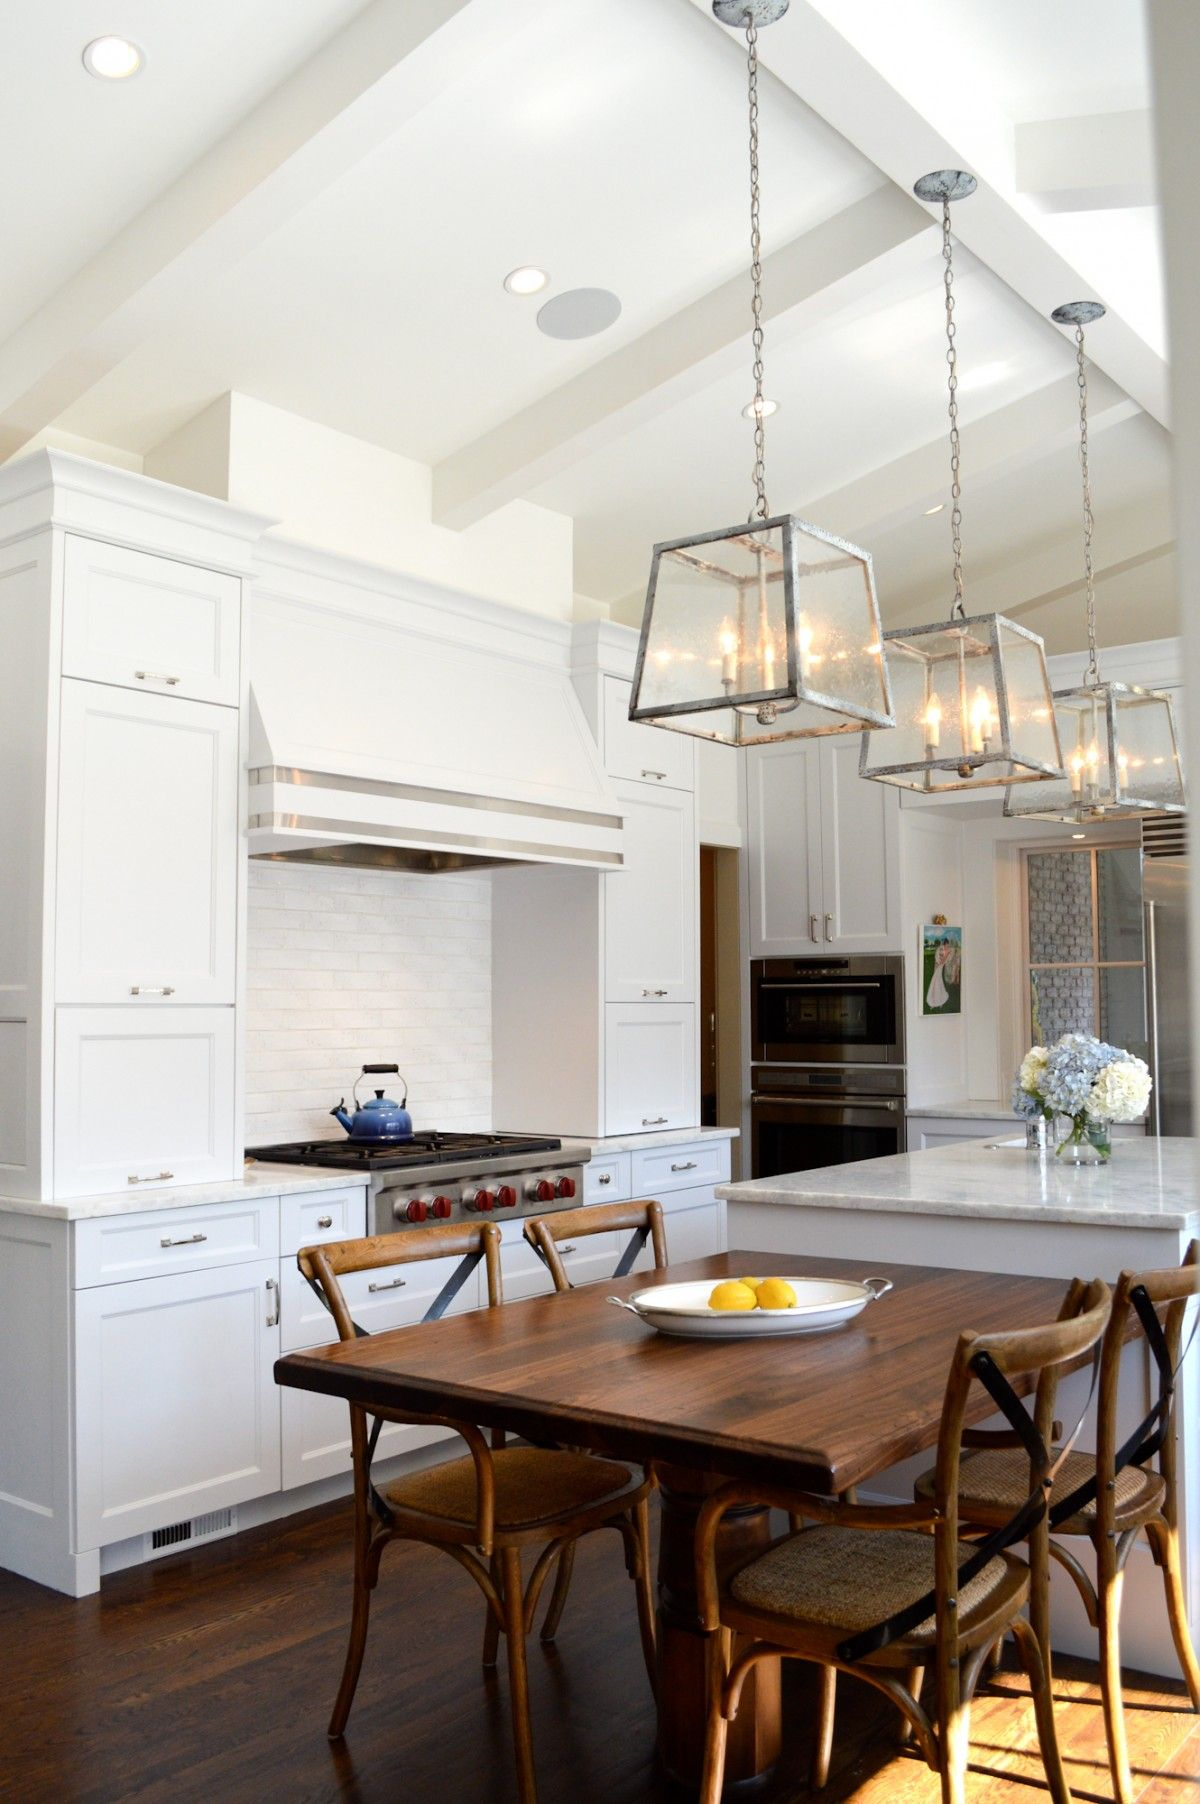 Best Kitchen Gallery: Cabi Ry Integrated Hood Dining Table Off Island High Ceilings of Hood Kitchen Design Vaulting Ceiling on rachelxblog.com